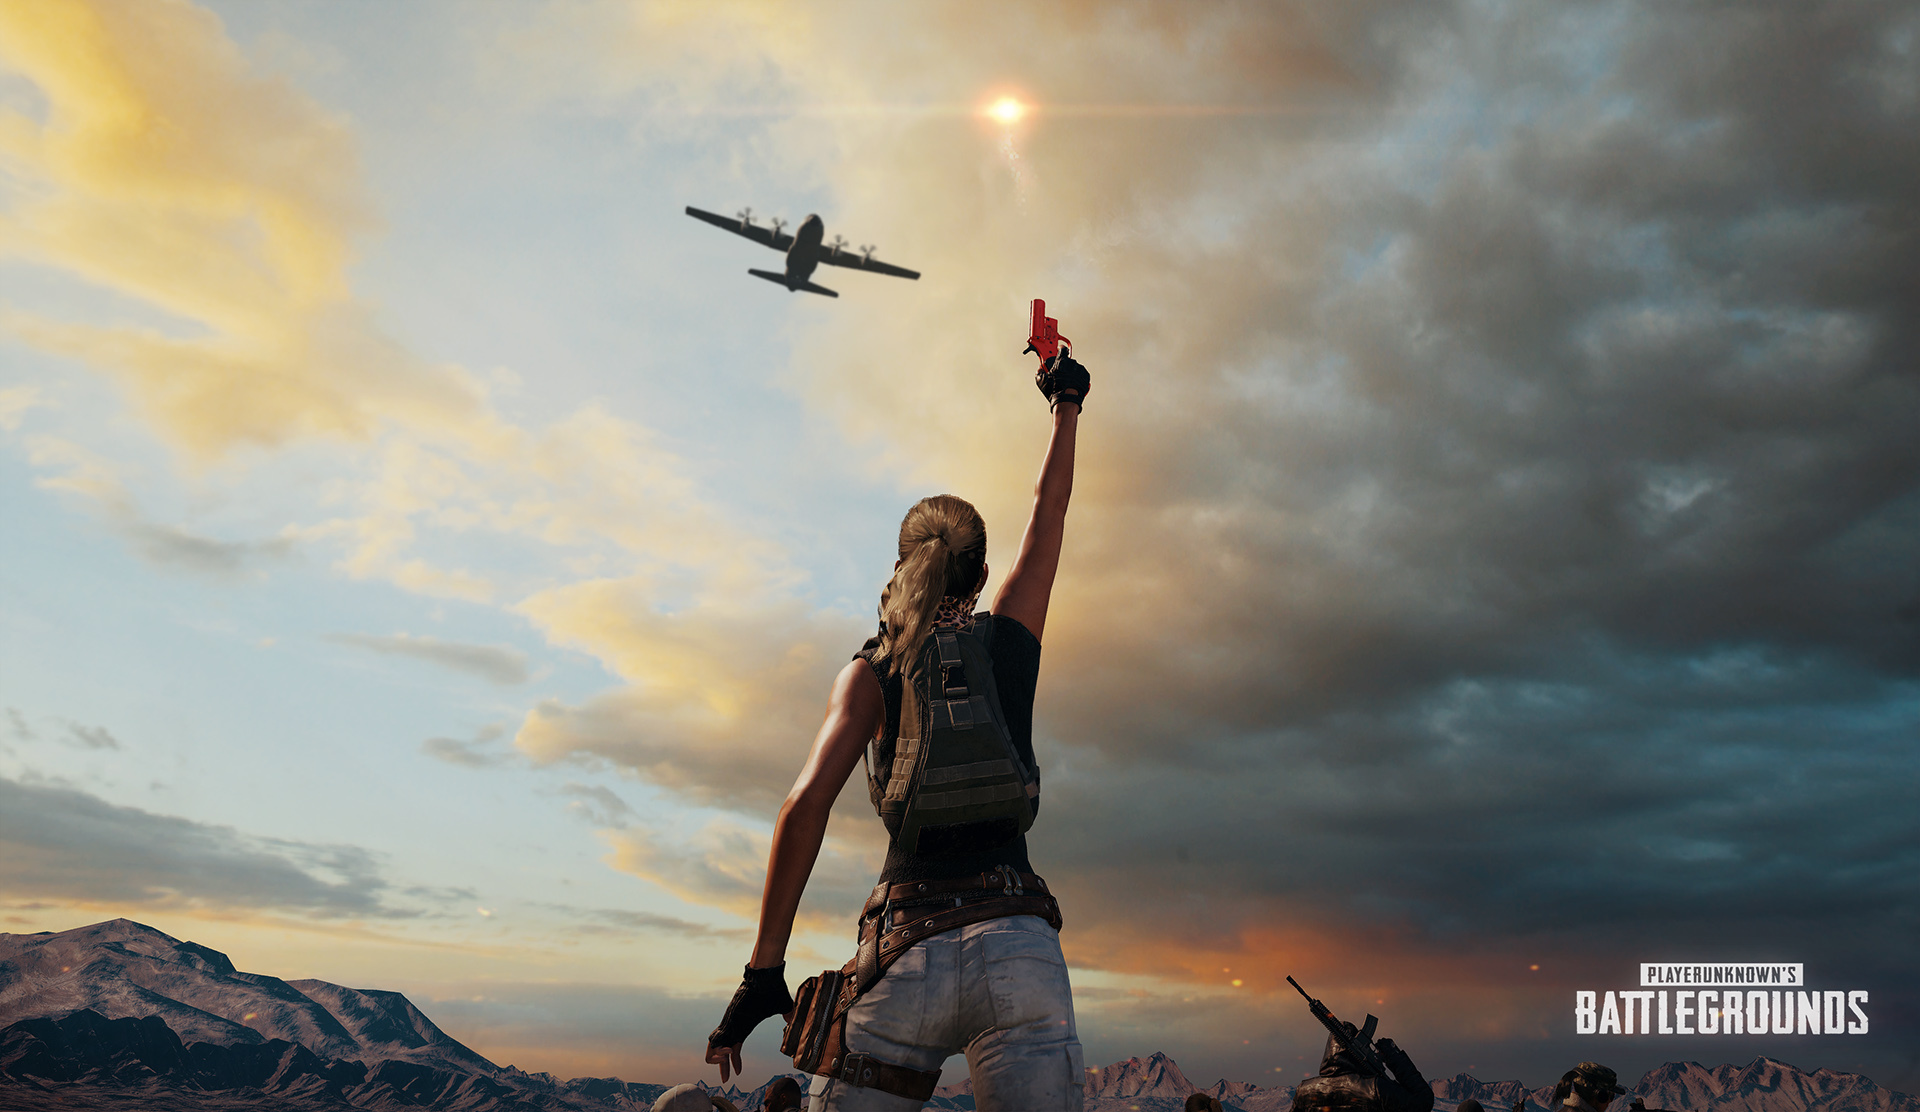 New PUBG Limited-Time Event, Metal Rain, Now Live On PC